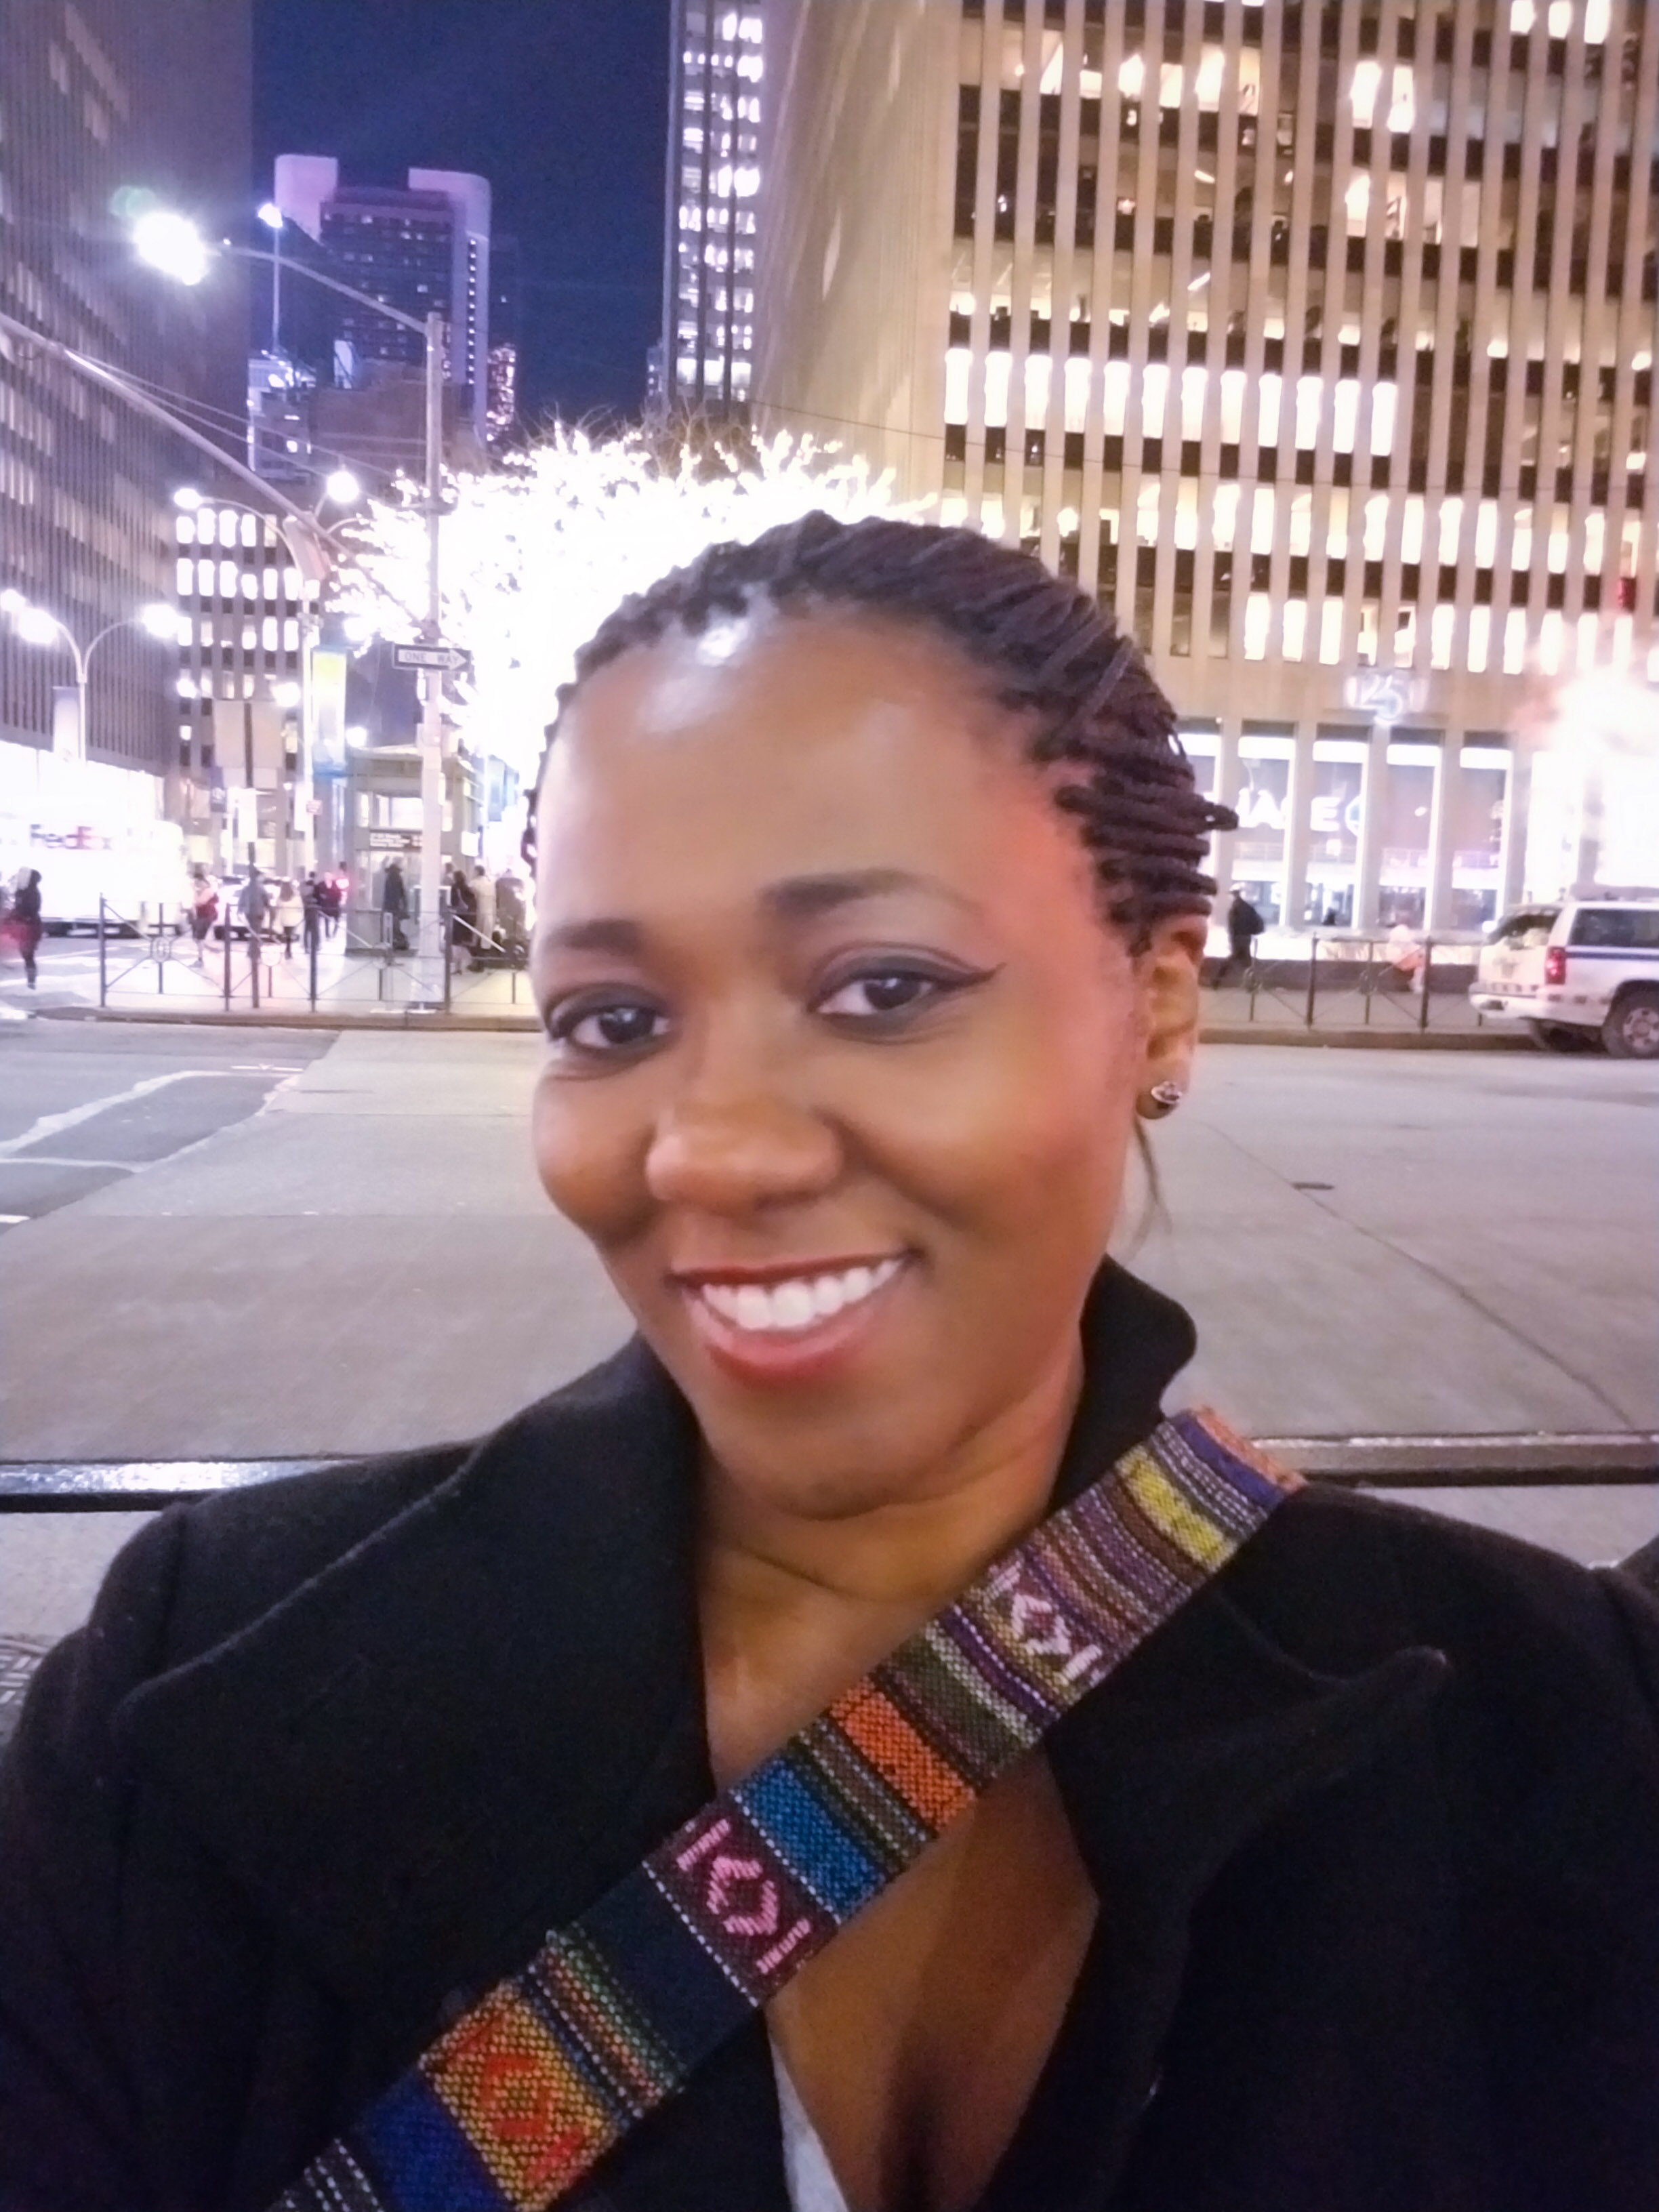 - We ventured into numerous shopping centers and daylight dissolved. We were by the Theater District and still like little squirrels, ventured out some more. We ended up at Central Park, at the dark, enjoying the scenery, shopping and breathing the New York air.We ended our evening with drinks at the Plaza. We had our first Manhattan. It seemed fitting. Sorry, I don't remember the taste. It was alcohol. I had to leave early for my flight to Cali early the next morning so I left the partying to the guys while I went to bed like a responsible adult.All-in-all, New York was beautiful for the short time I visited. I plan on going back and investing more time in the MOMA. Had I known, I would have allowed more time in New York but my goal was to experience all parts of California into my limited vacation time. Until then….